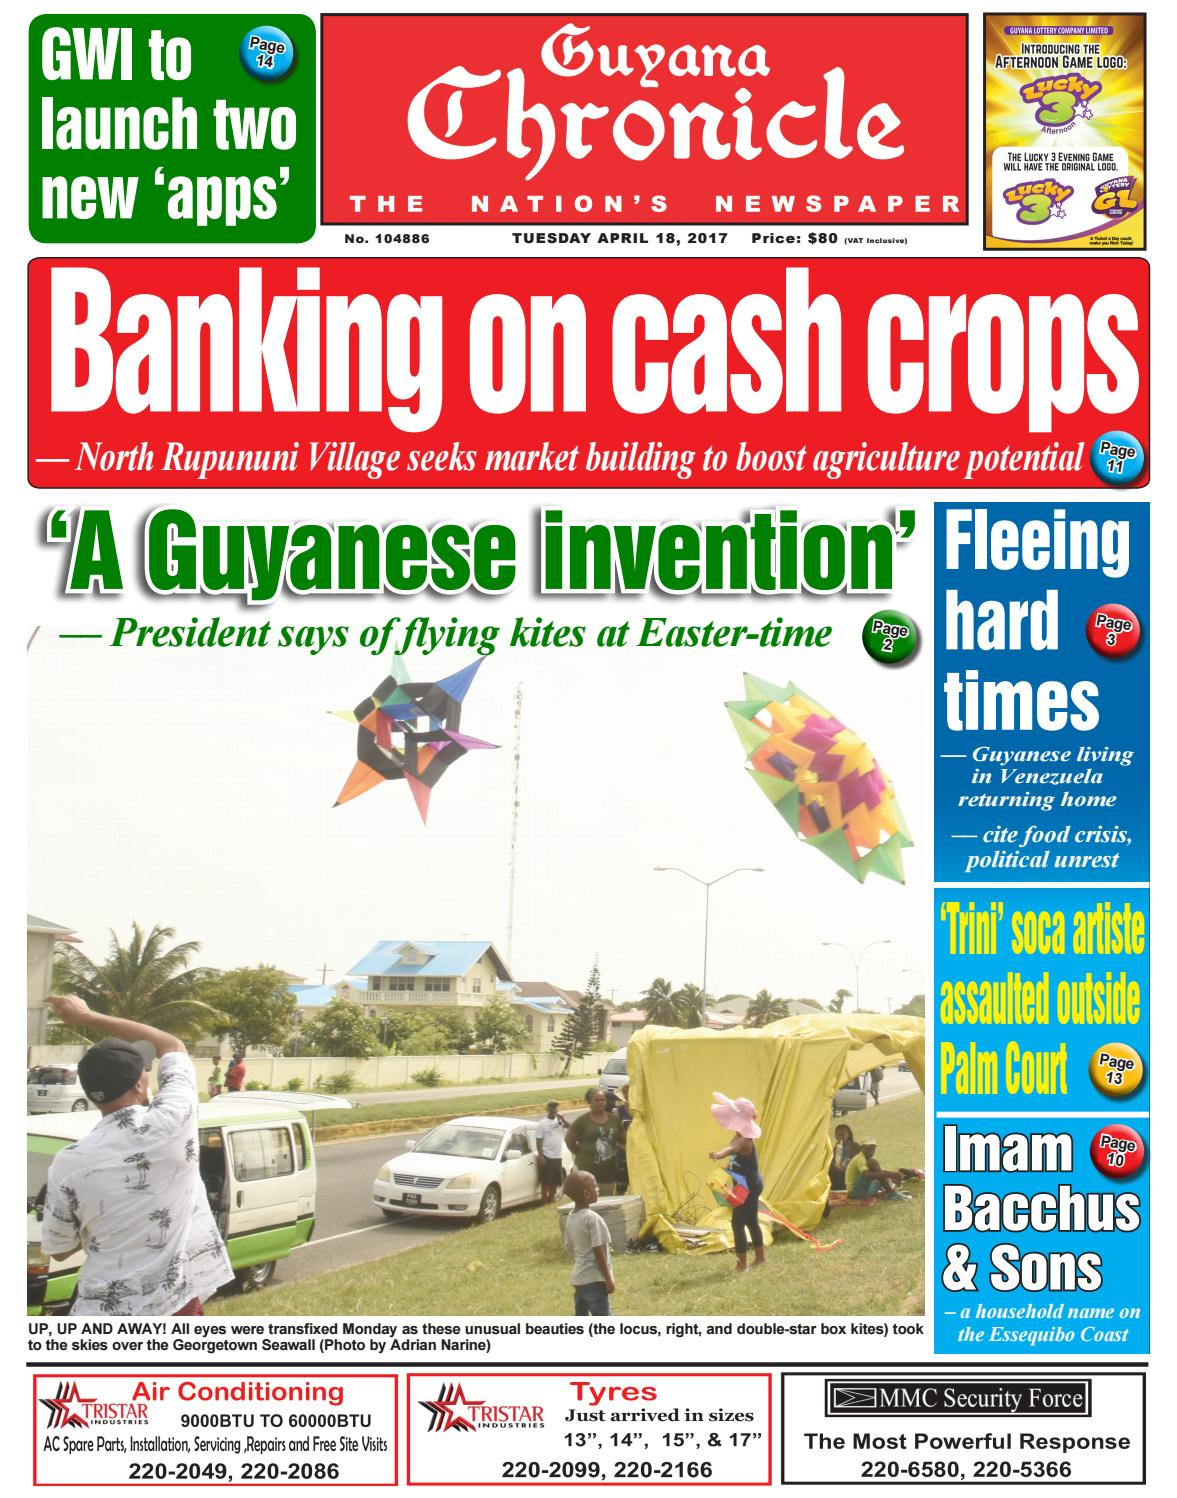 Guyana Chronicle E-Paper 18 04 2017 by Guyana Chronicle E